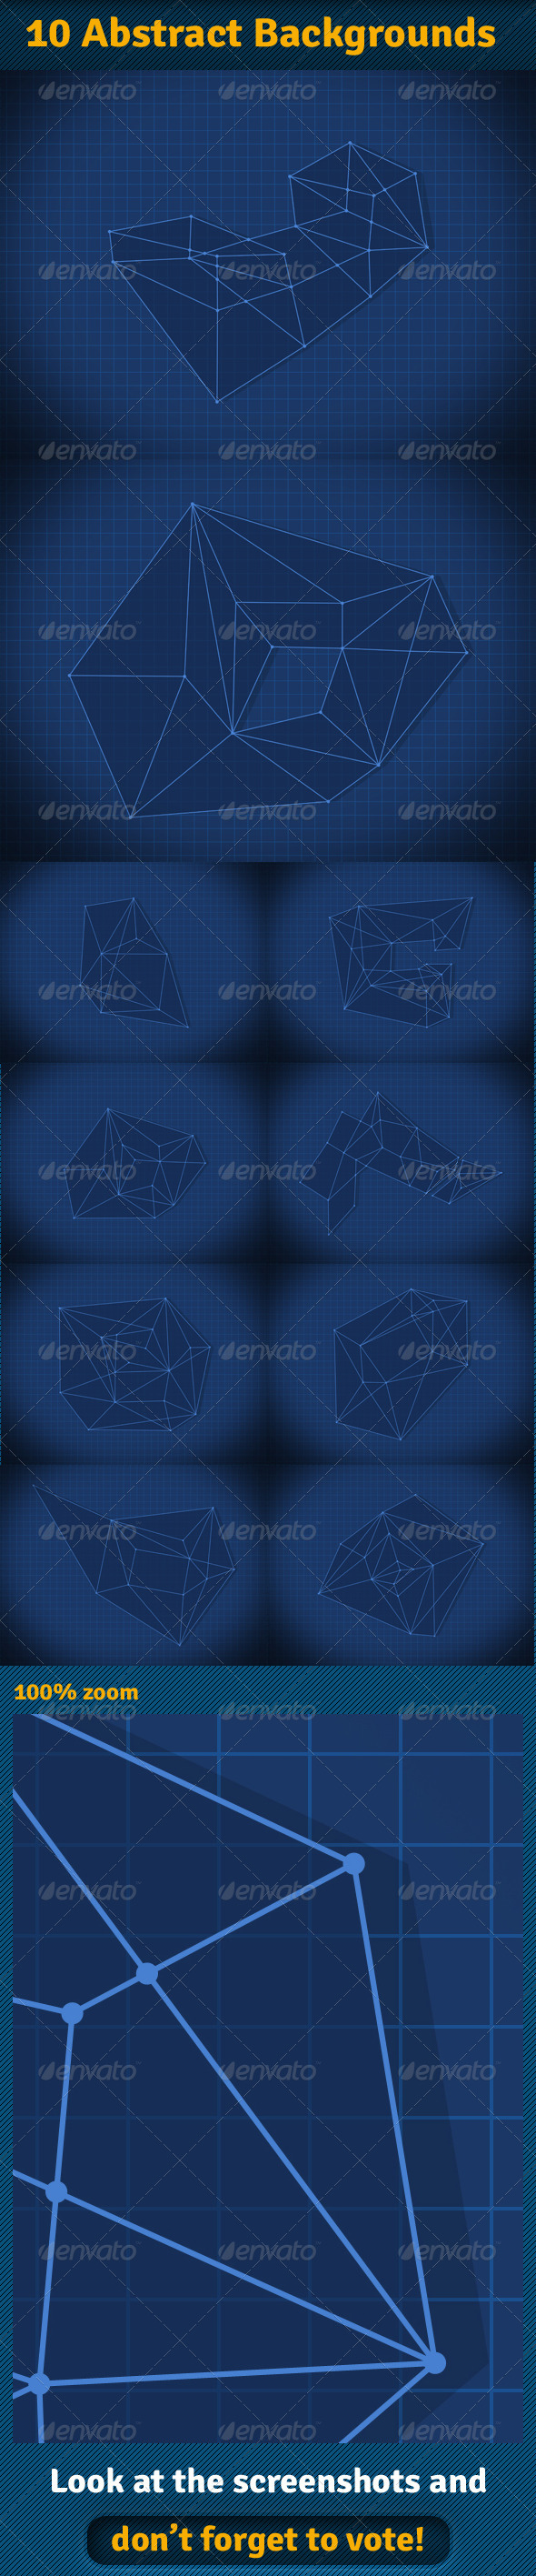 Abstract Backgrounds - Tech / Futuristic Backgrounds